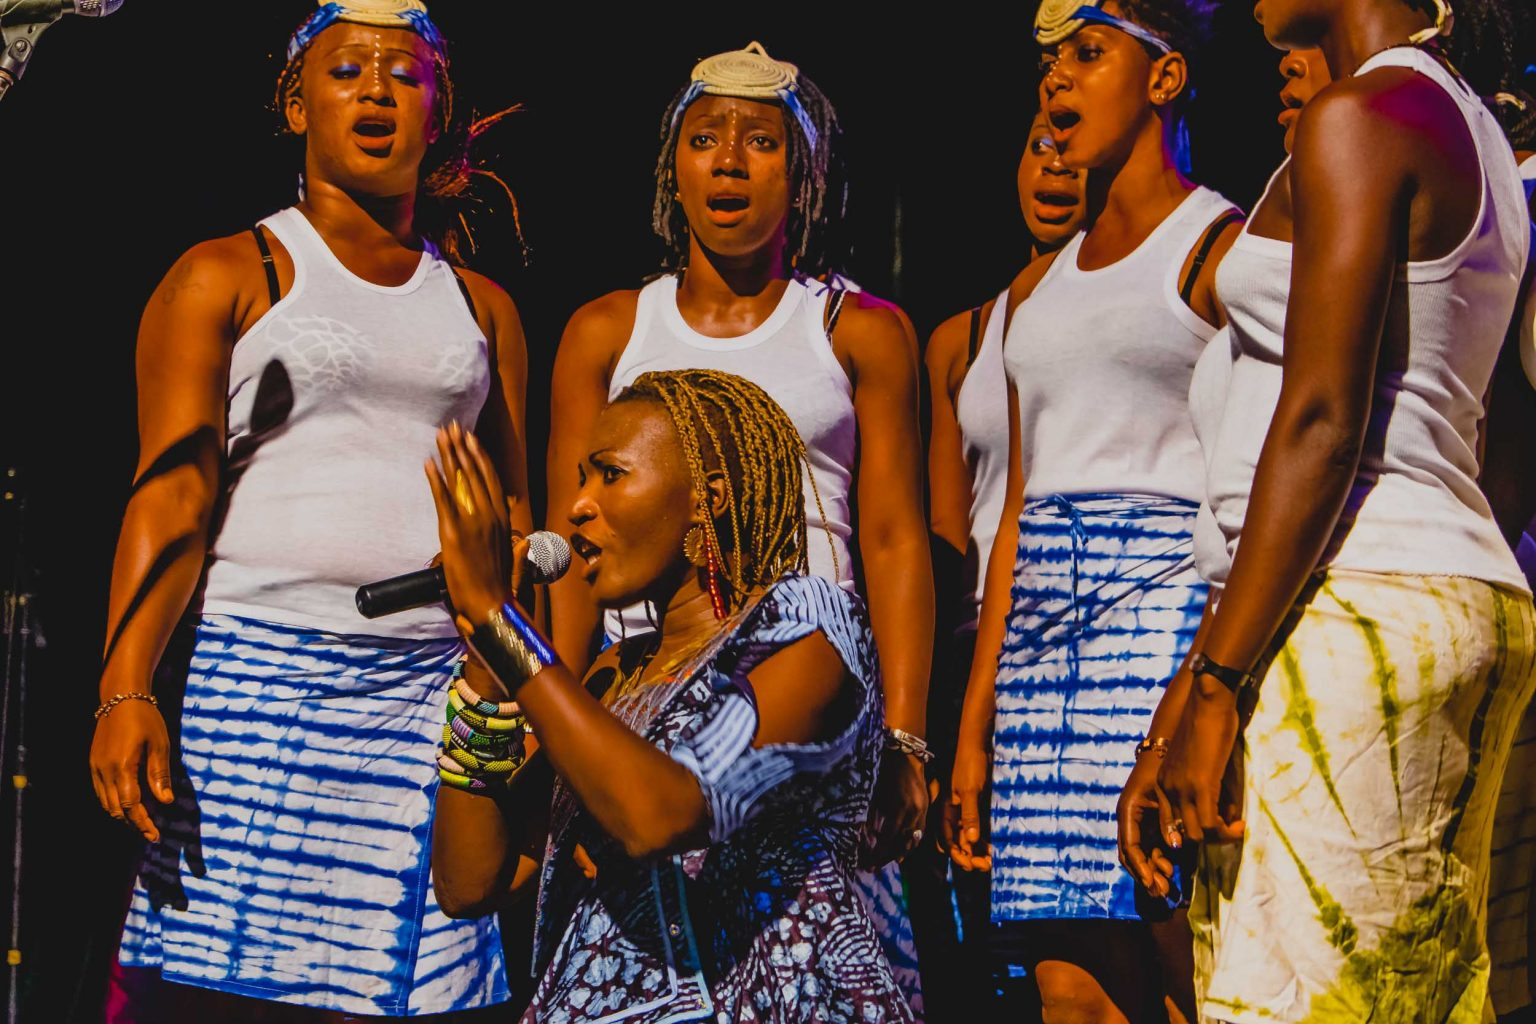 GUINEAN SINGER SAYON BAMBA PERFORMING A SHOW AT GUINEAN-FRENCH CULTURAL CENTER (CCFG) IN CONAKRY